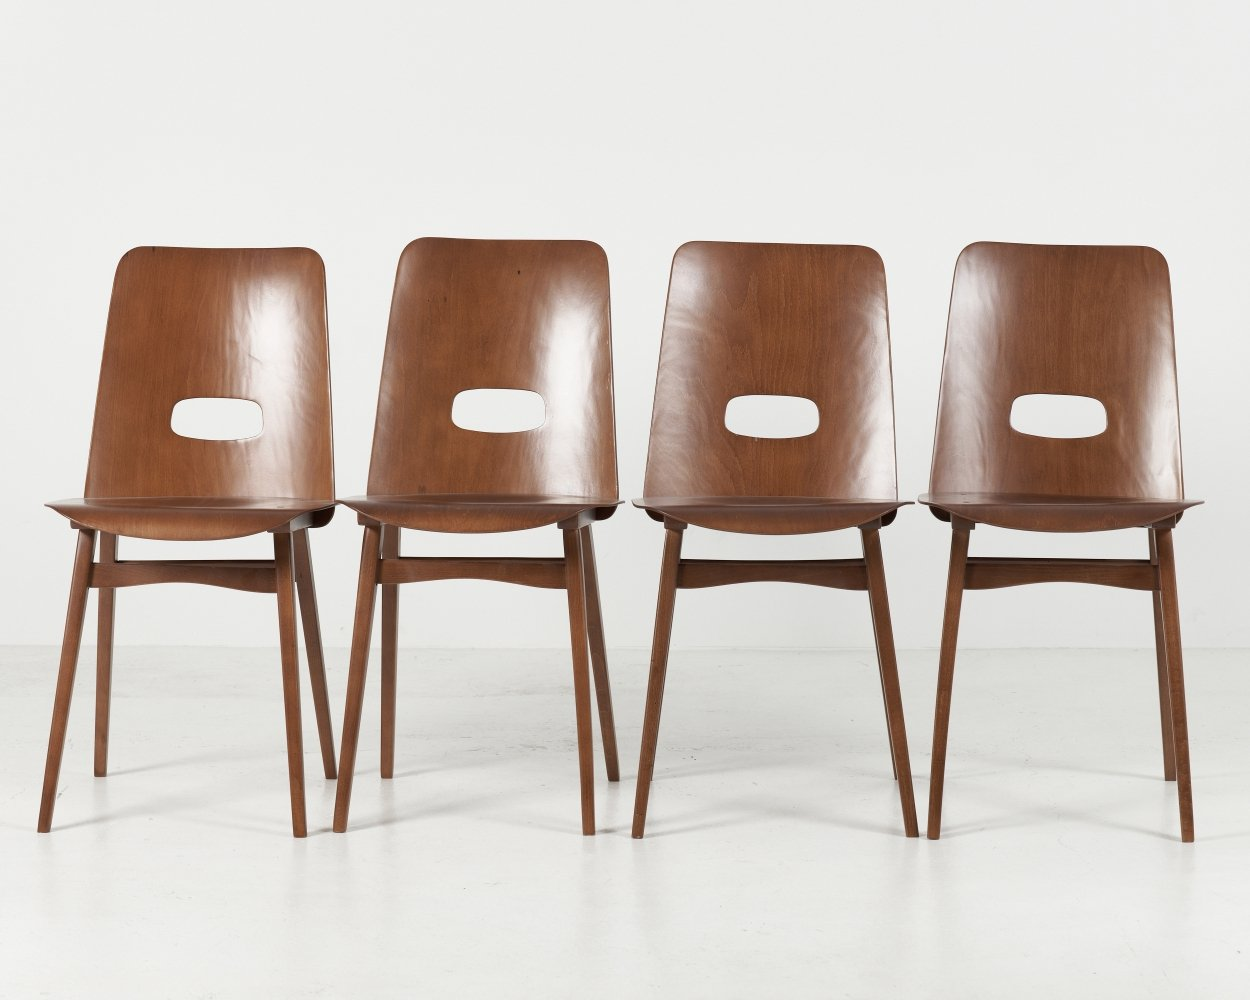 Set of 4 chairs from TON, 1970